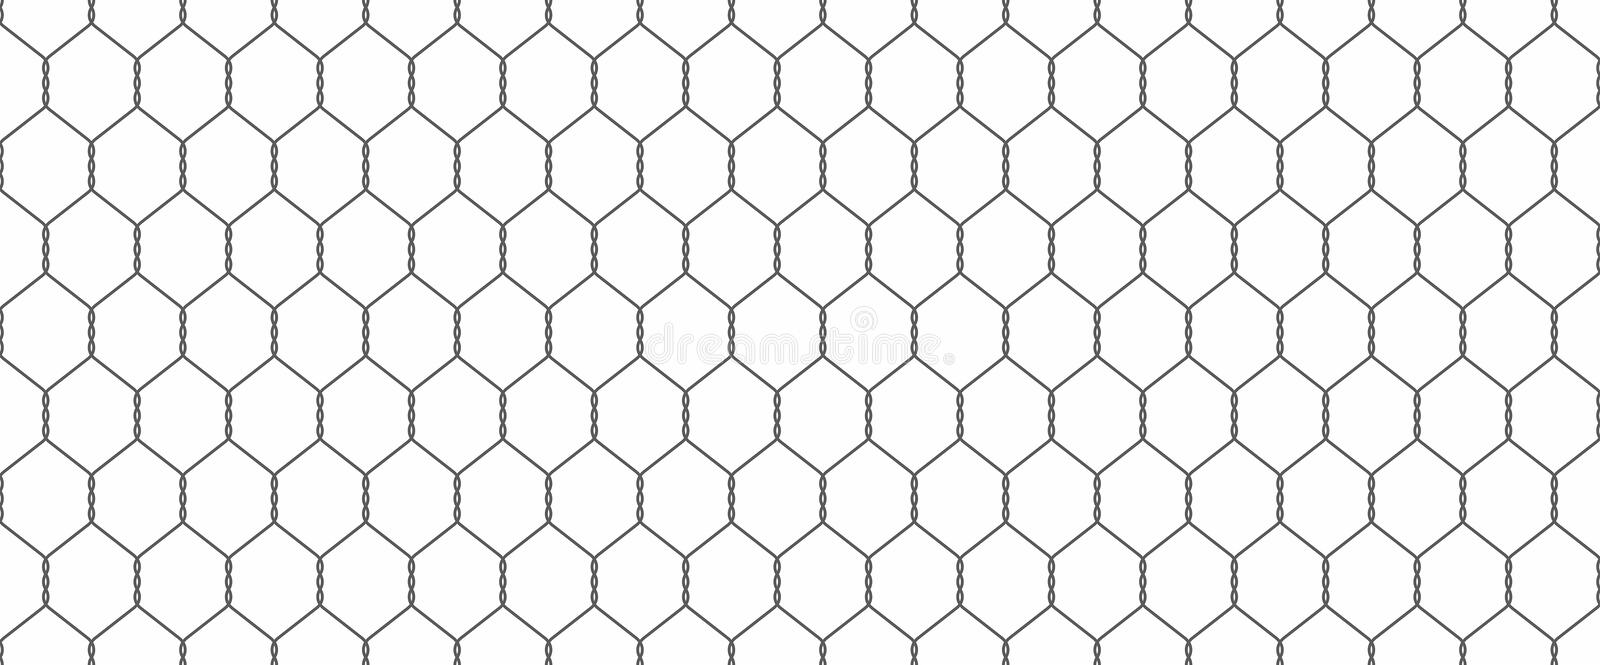 Chainlink fence. Silhouette of metal wire mesh, seamless pattern vector illustration